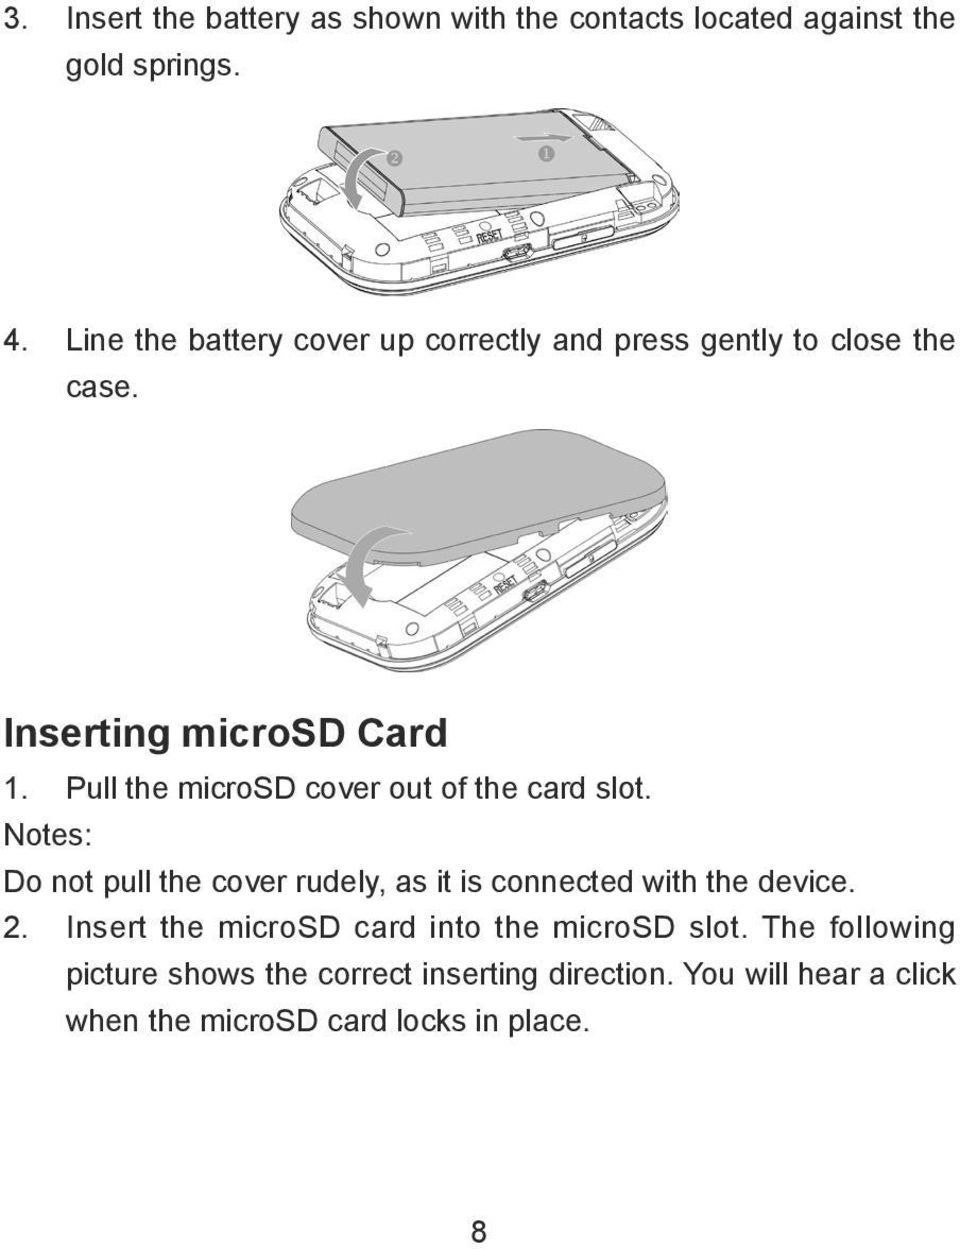 Pull the microsd cover out of the card slot. Notes: Do not pull the cover rudely, as it is connected with the device.